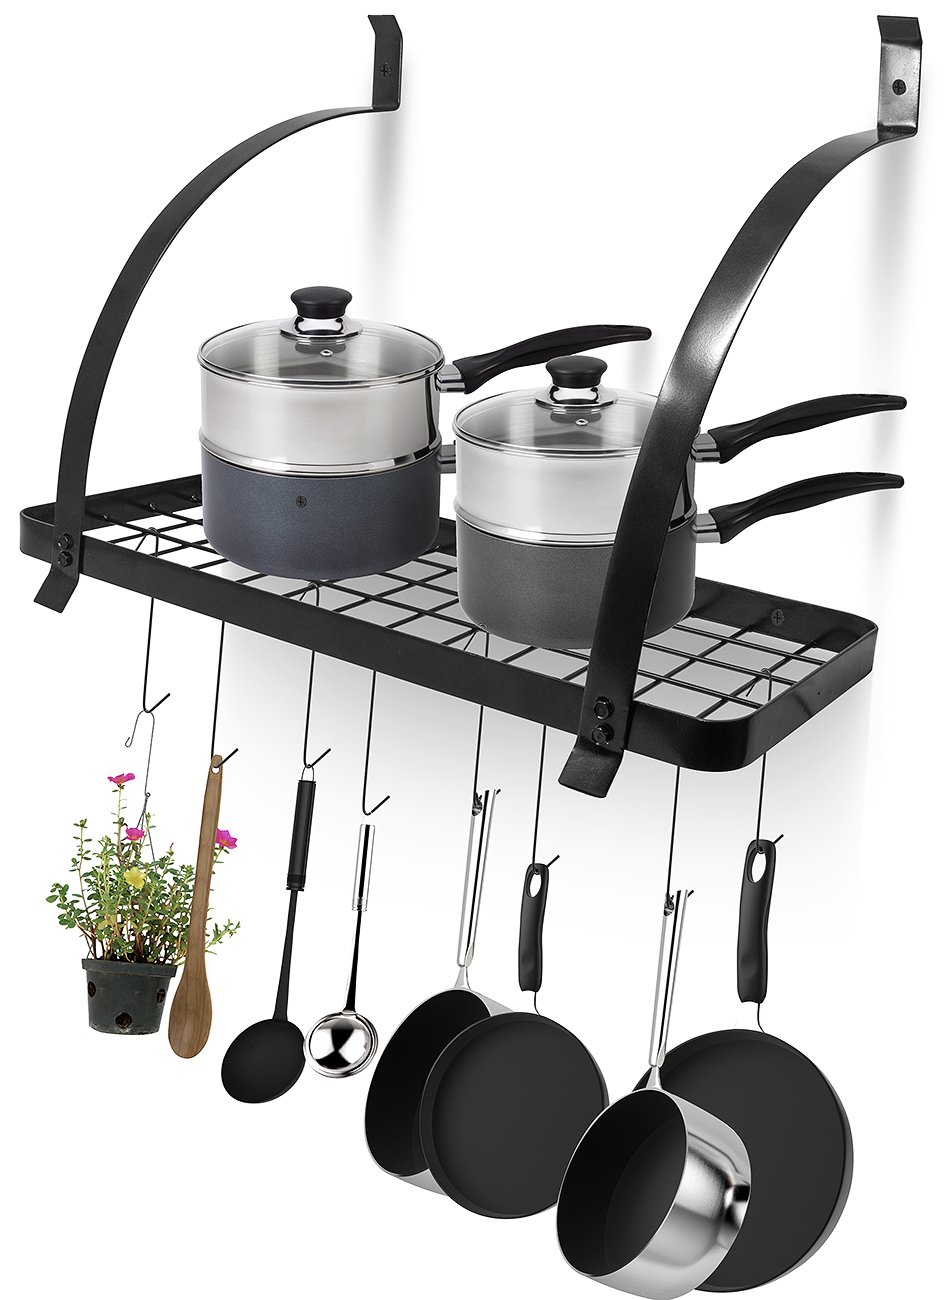 Sorbus Kitchen Wall Pot Rack with Hooks — Decorative Wall Mounted Storage Rack — Multi-Purpose Shelf Organizer Great for Kitchen Cookware, Utensils, Pans, Books, Household Items, Bathroom (Black)